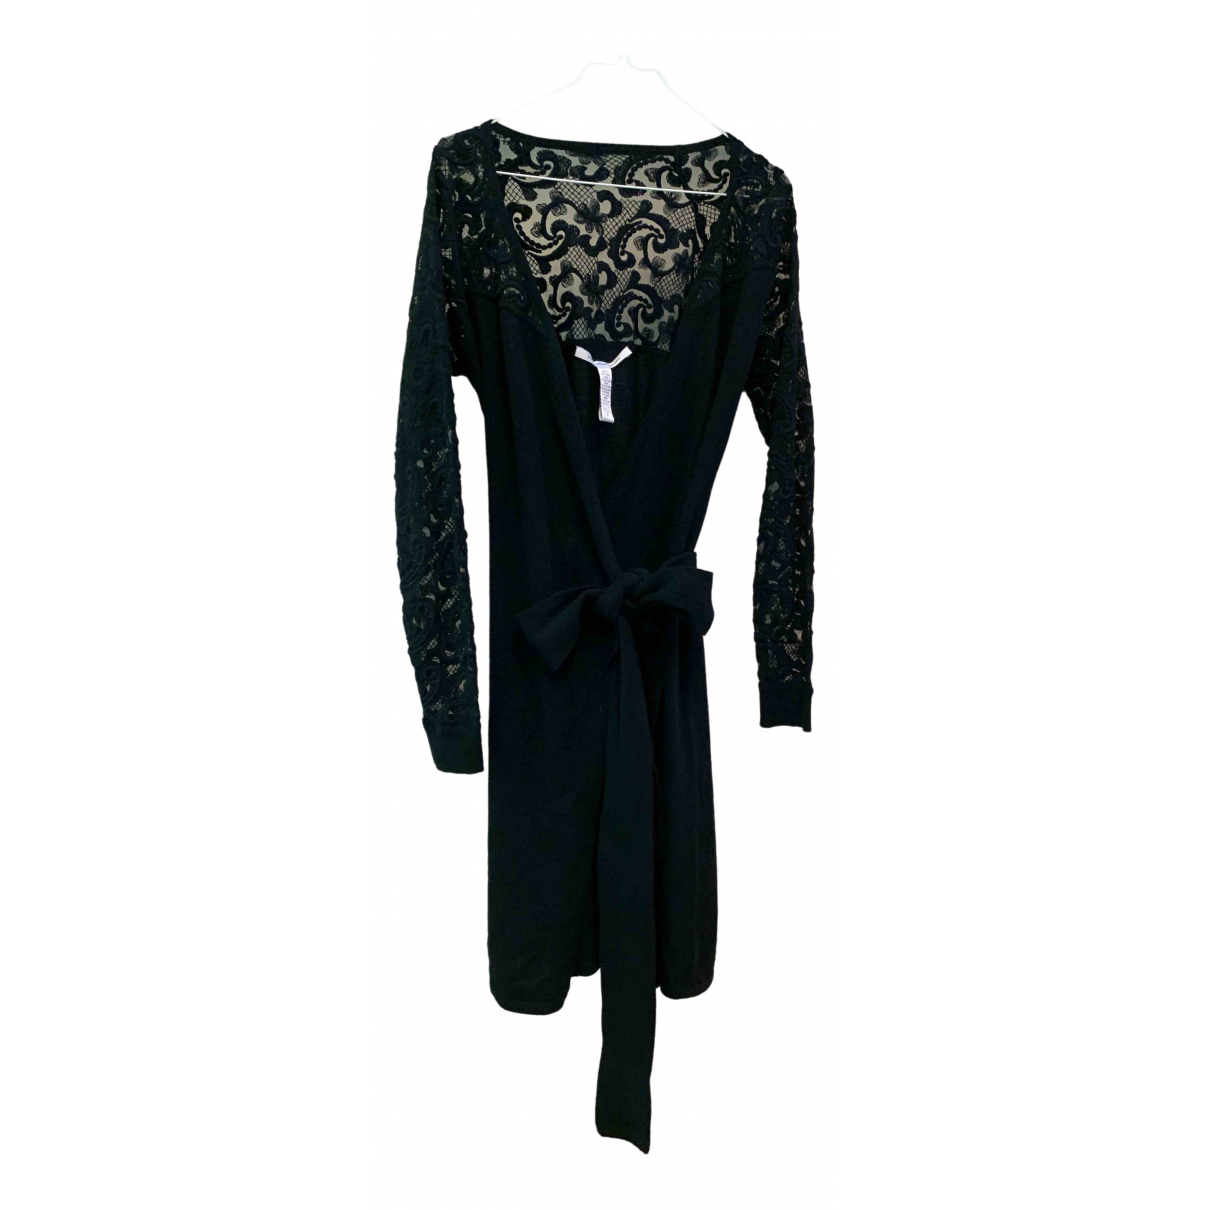 Diane Von Furstenberg \N Black Wool dress for Women S International